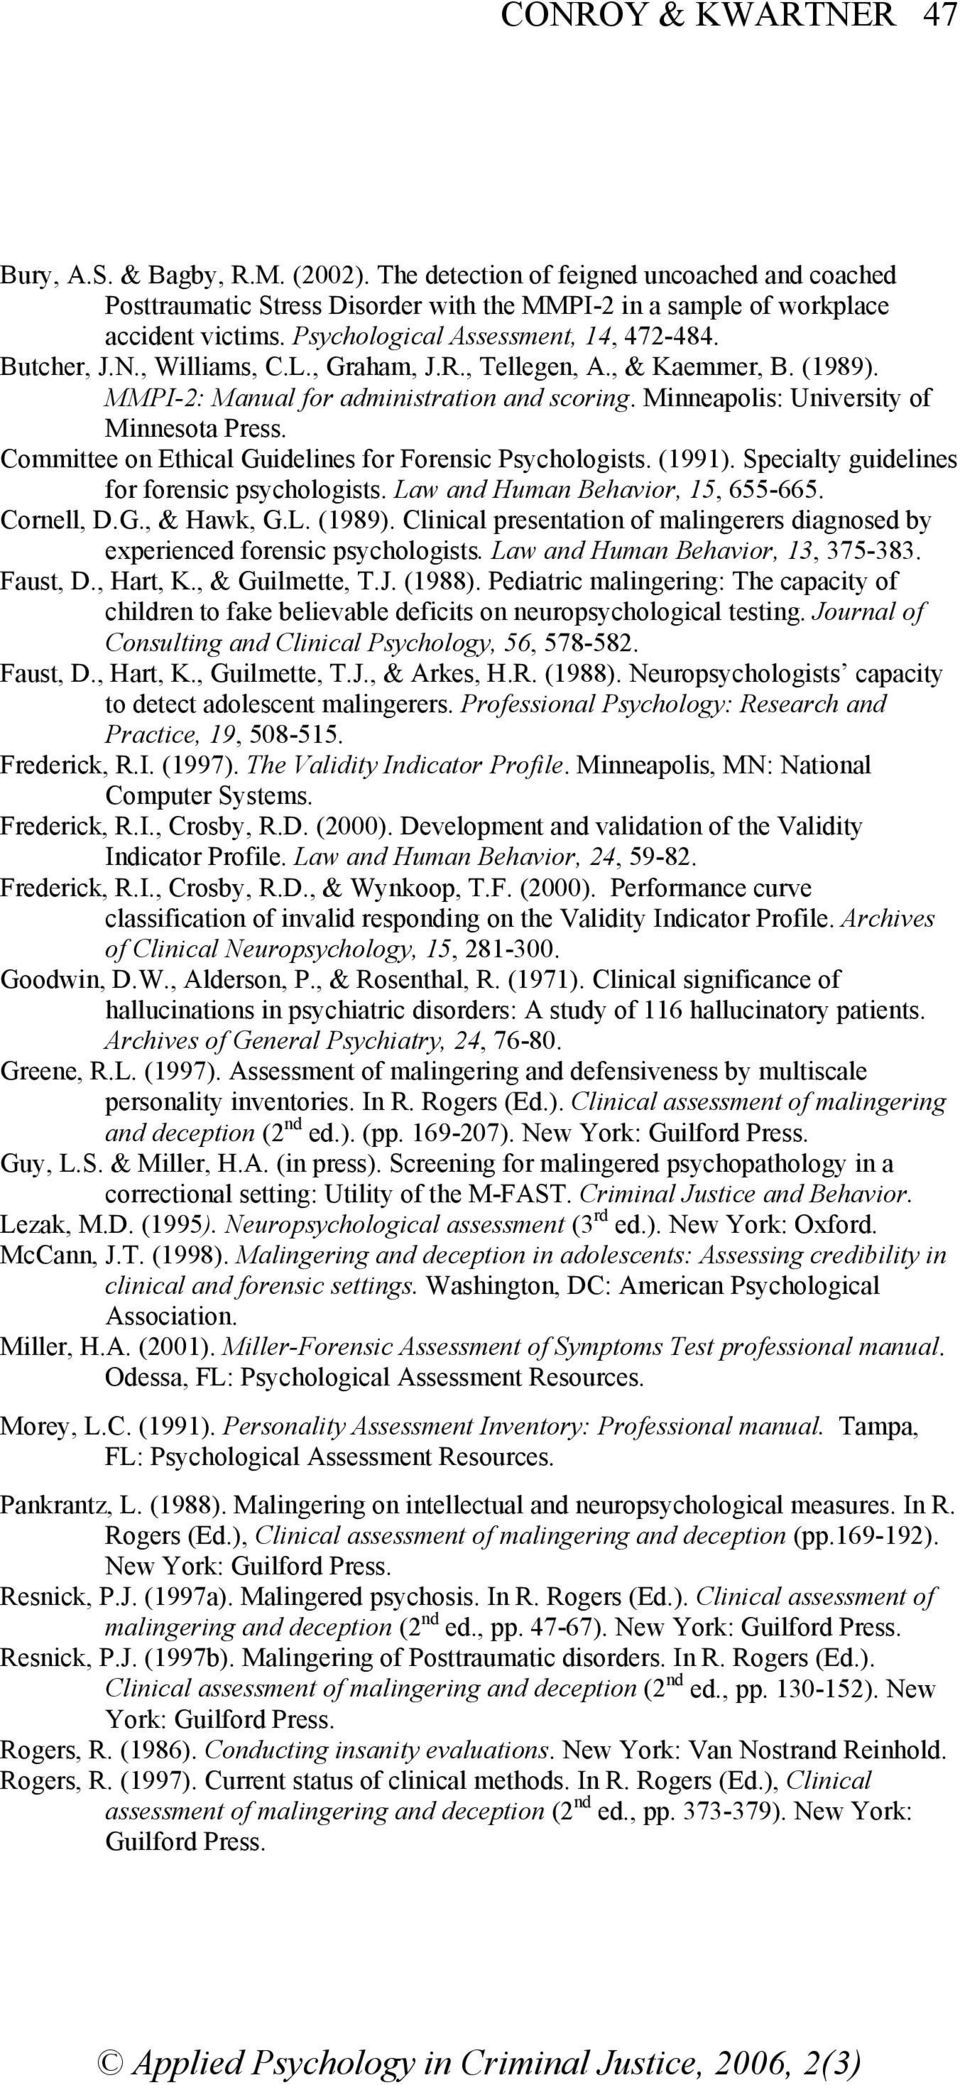 Minneapolis: University of Minnesota Press. Committee on Ethical Guidelines for Forensic Psychologists. (1991). Specialty guidelines for forensic psychologists. Law and Human Behavior, 15, 655-665.